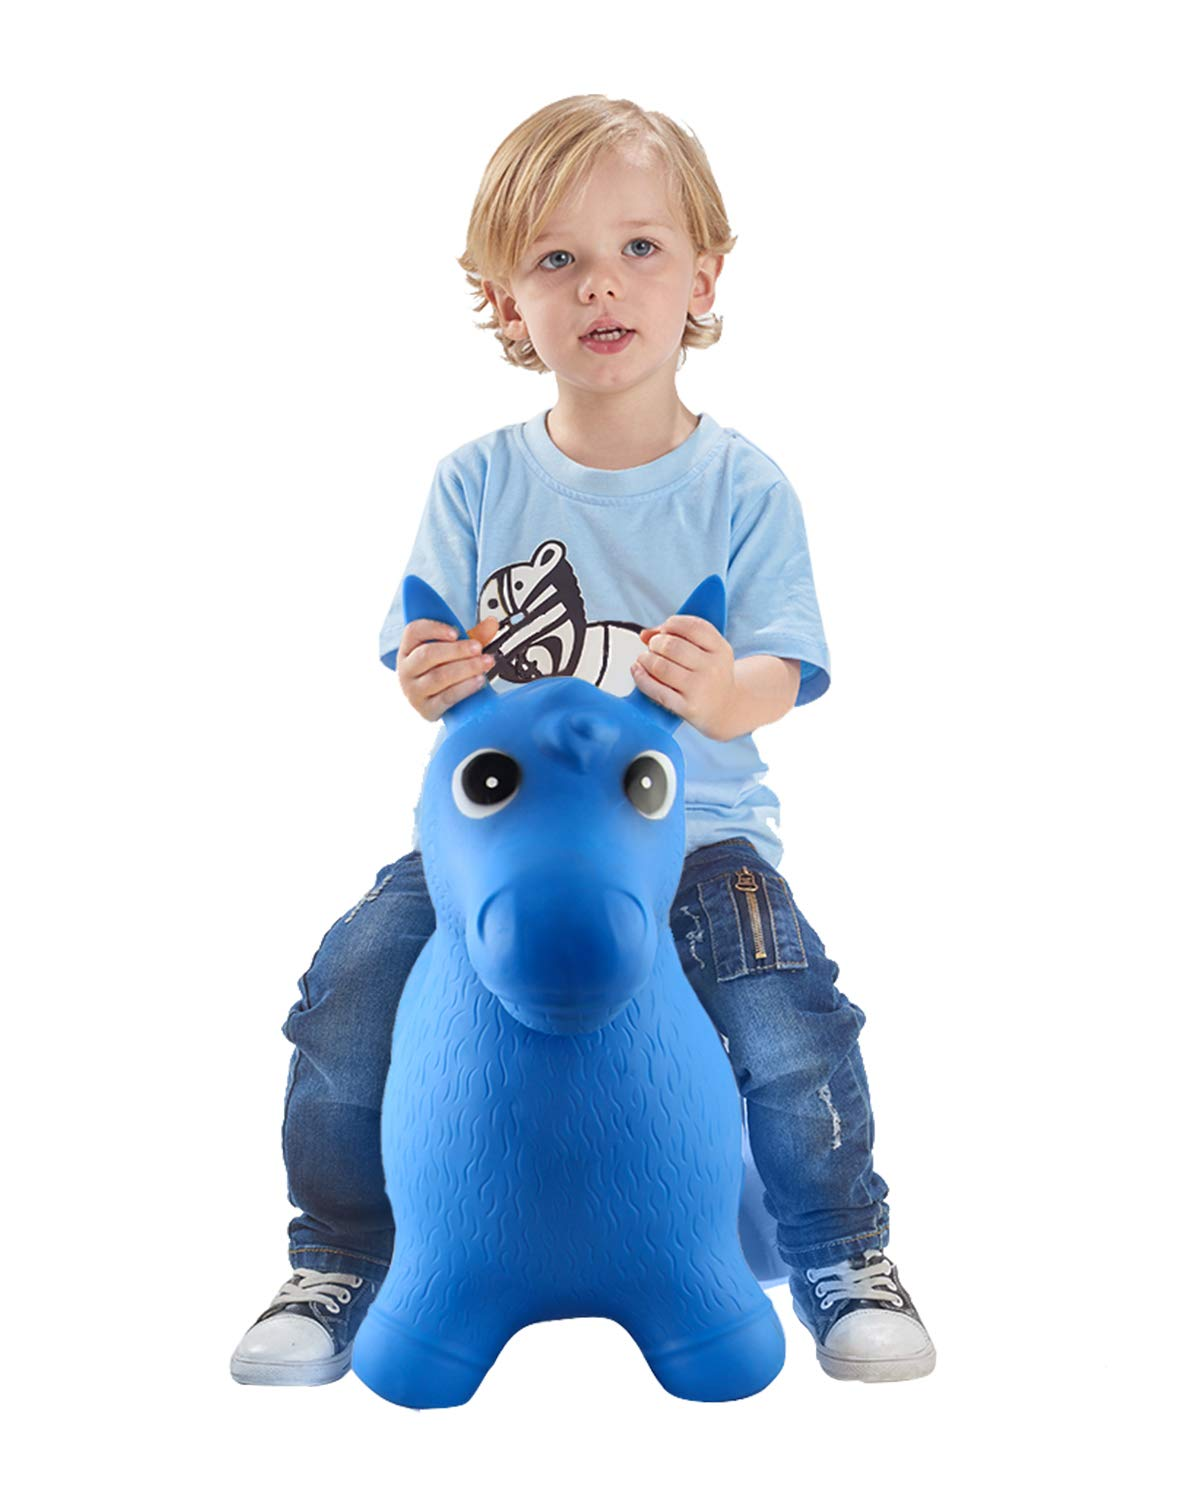 Bouncy Horse for Toddlers, Baby Bouncer Rocking, Bouncing Hopper Animals, Kids/Infant Riding Toys Girl Boy, Inflatable Farm Hopping/Hoppity Hop Sit and Spin (Blue) by Bodaon